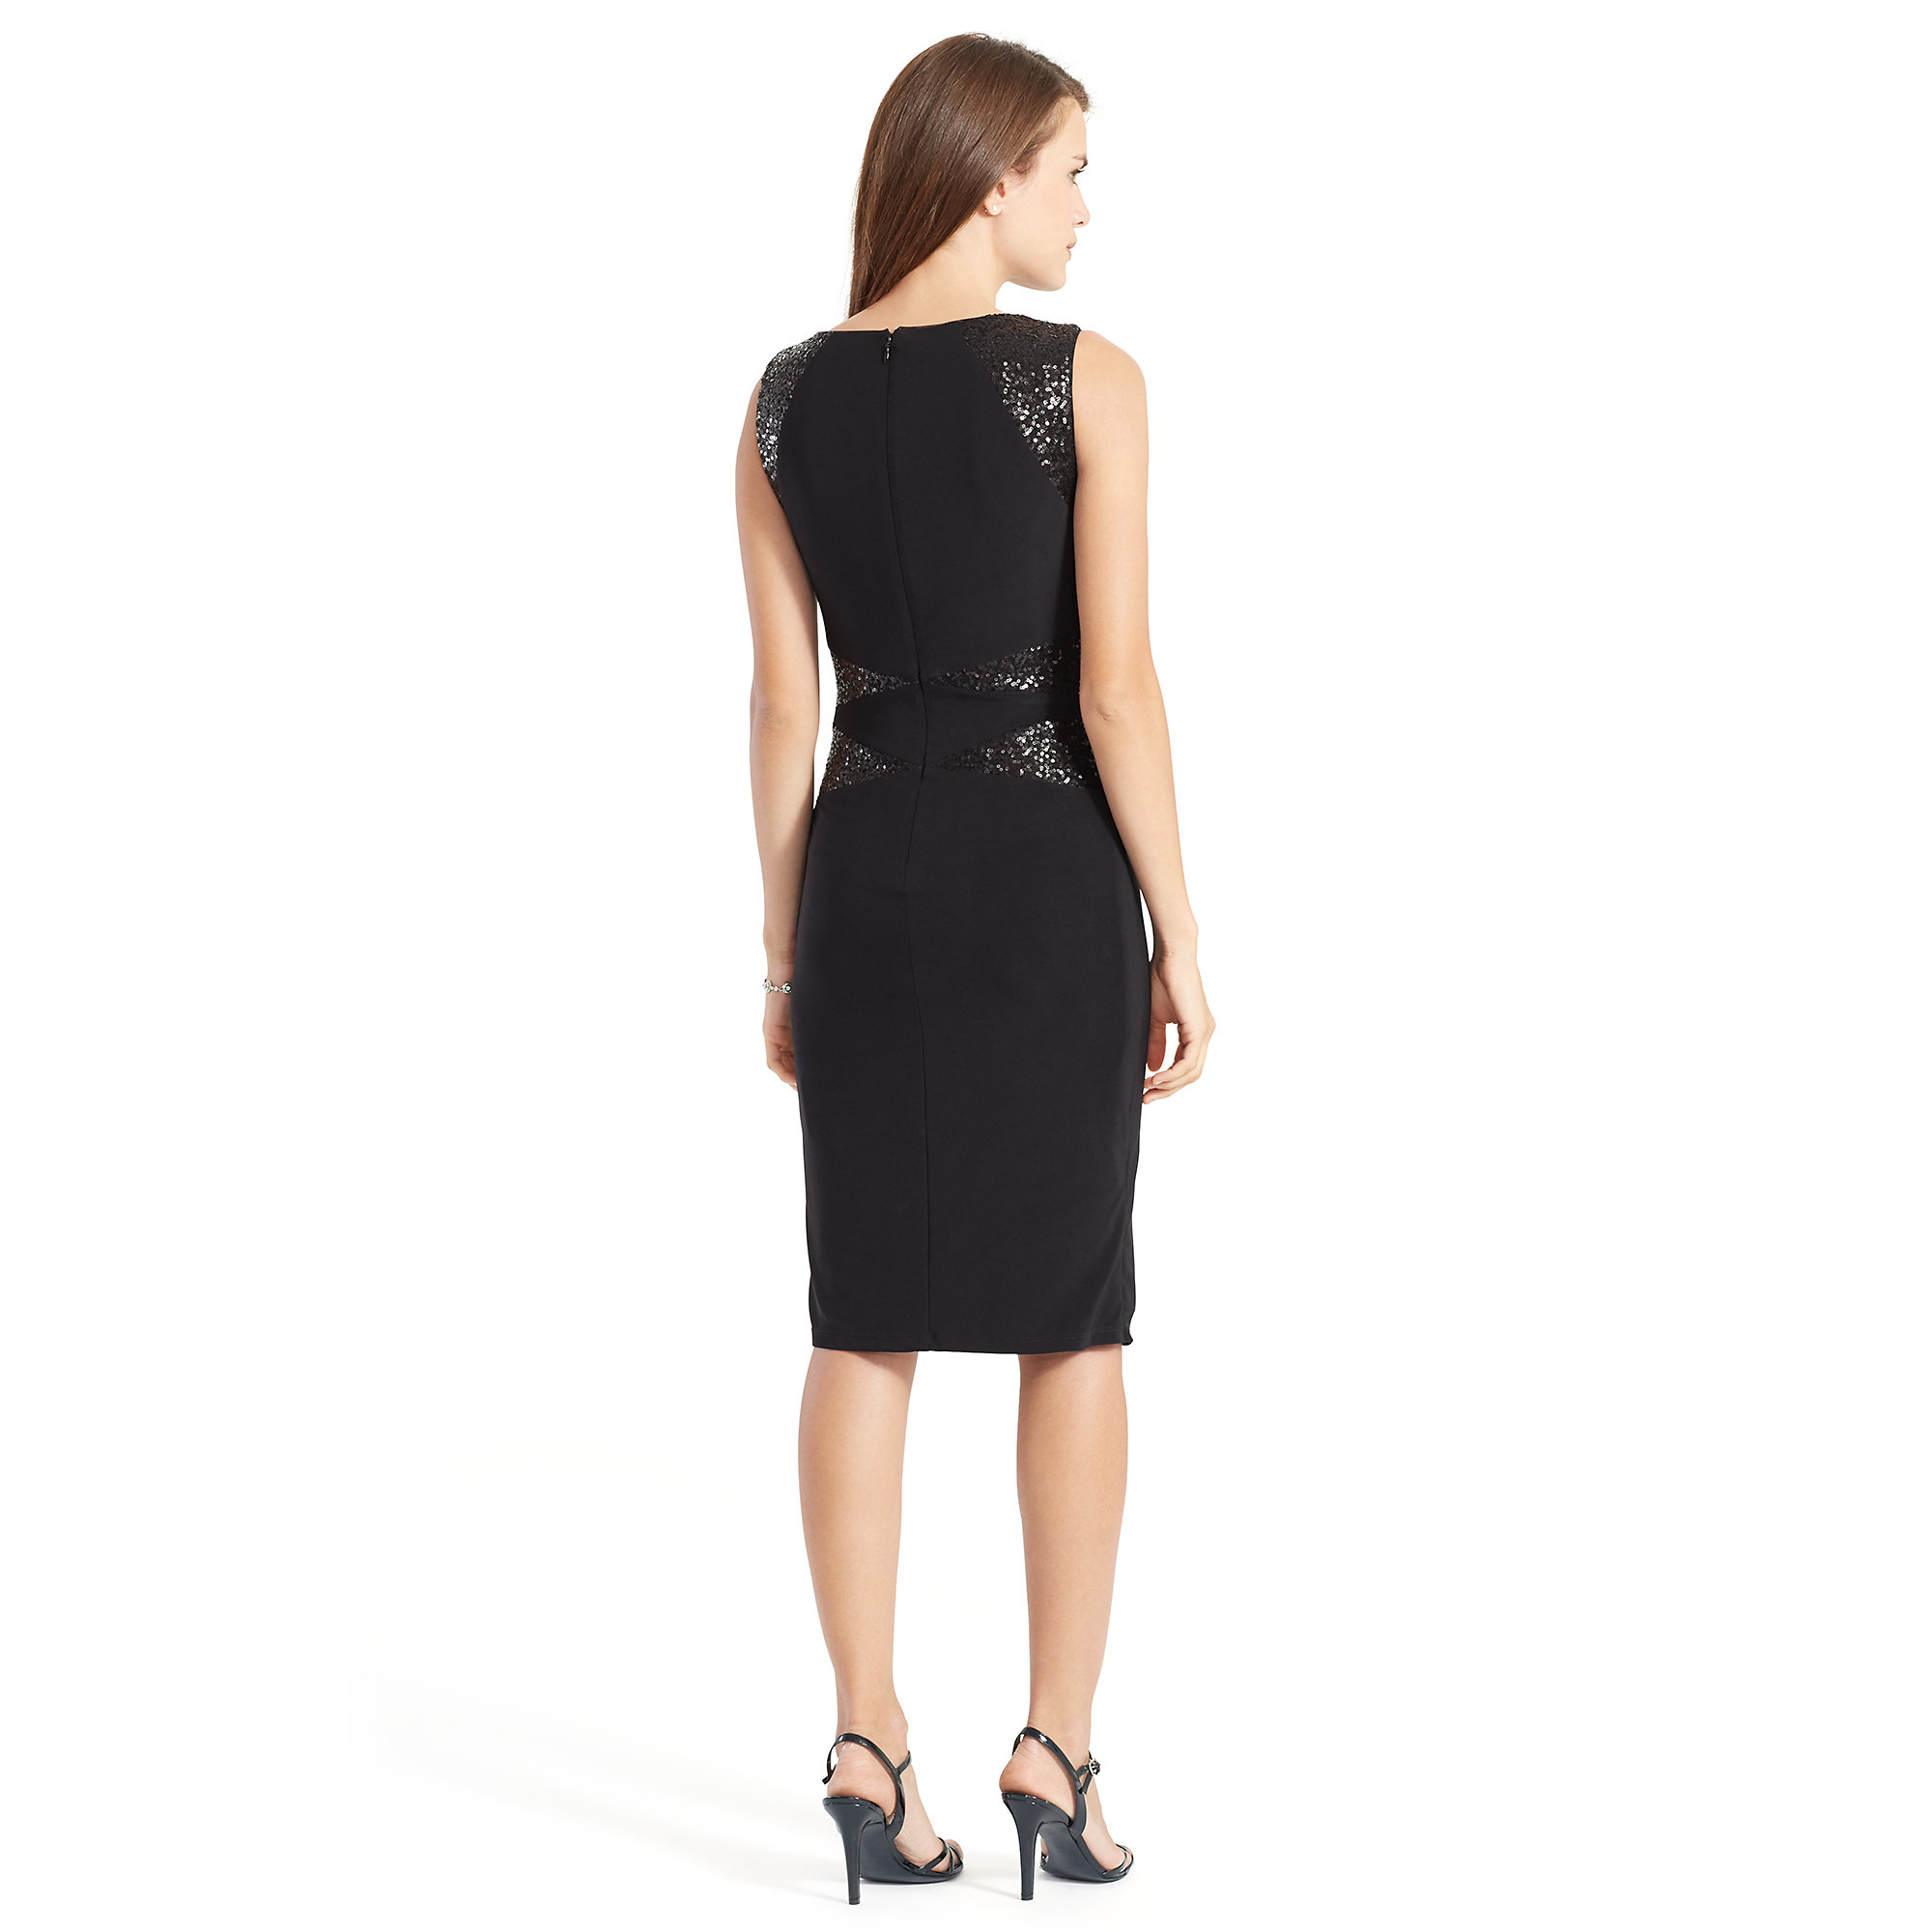 Lauren Ralph Lauren Väskor : Lyst ralph lauren sequin paneled jersey dress in black